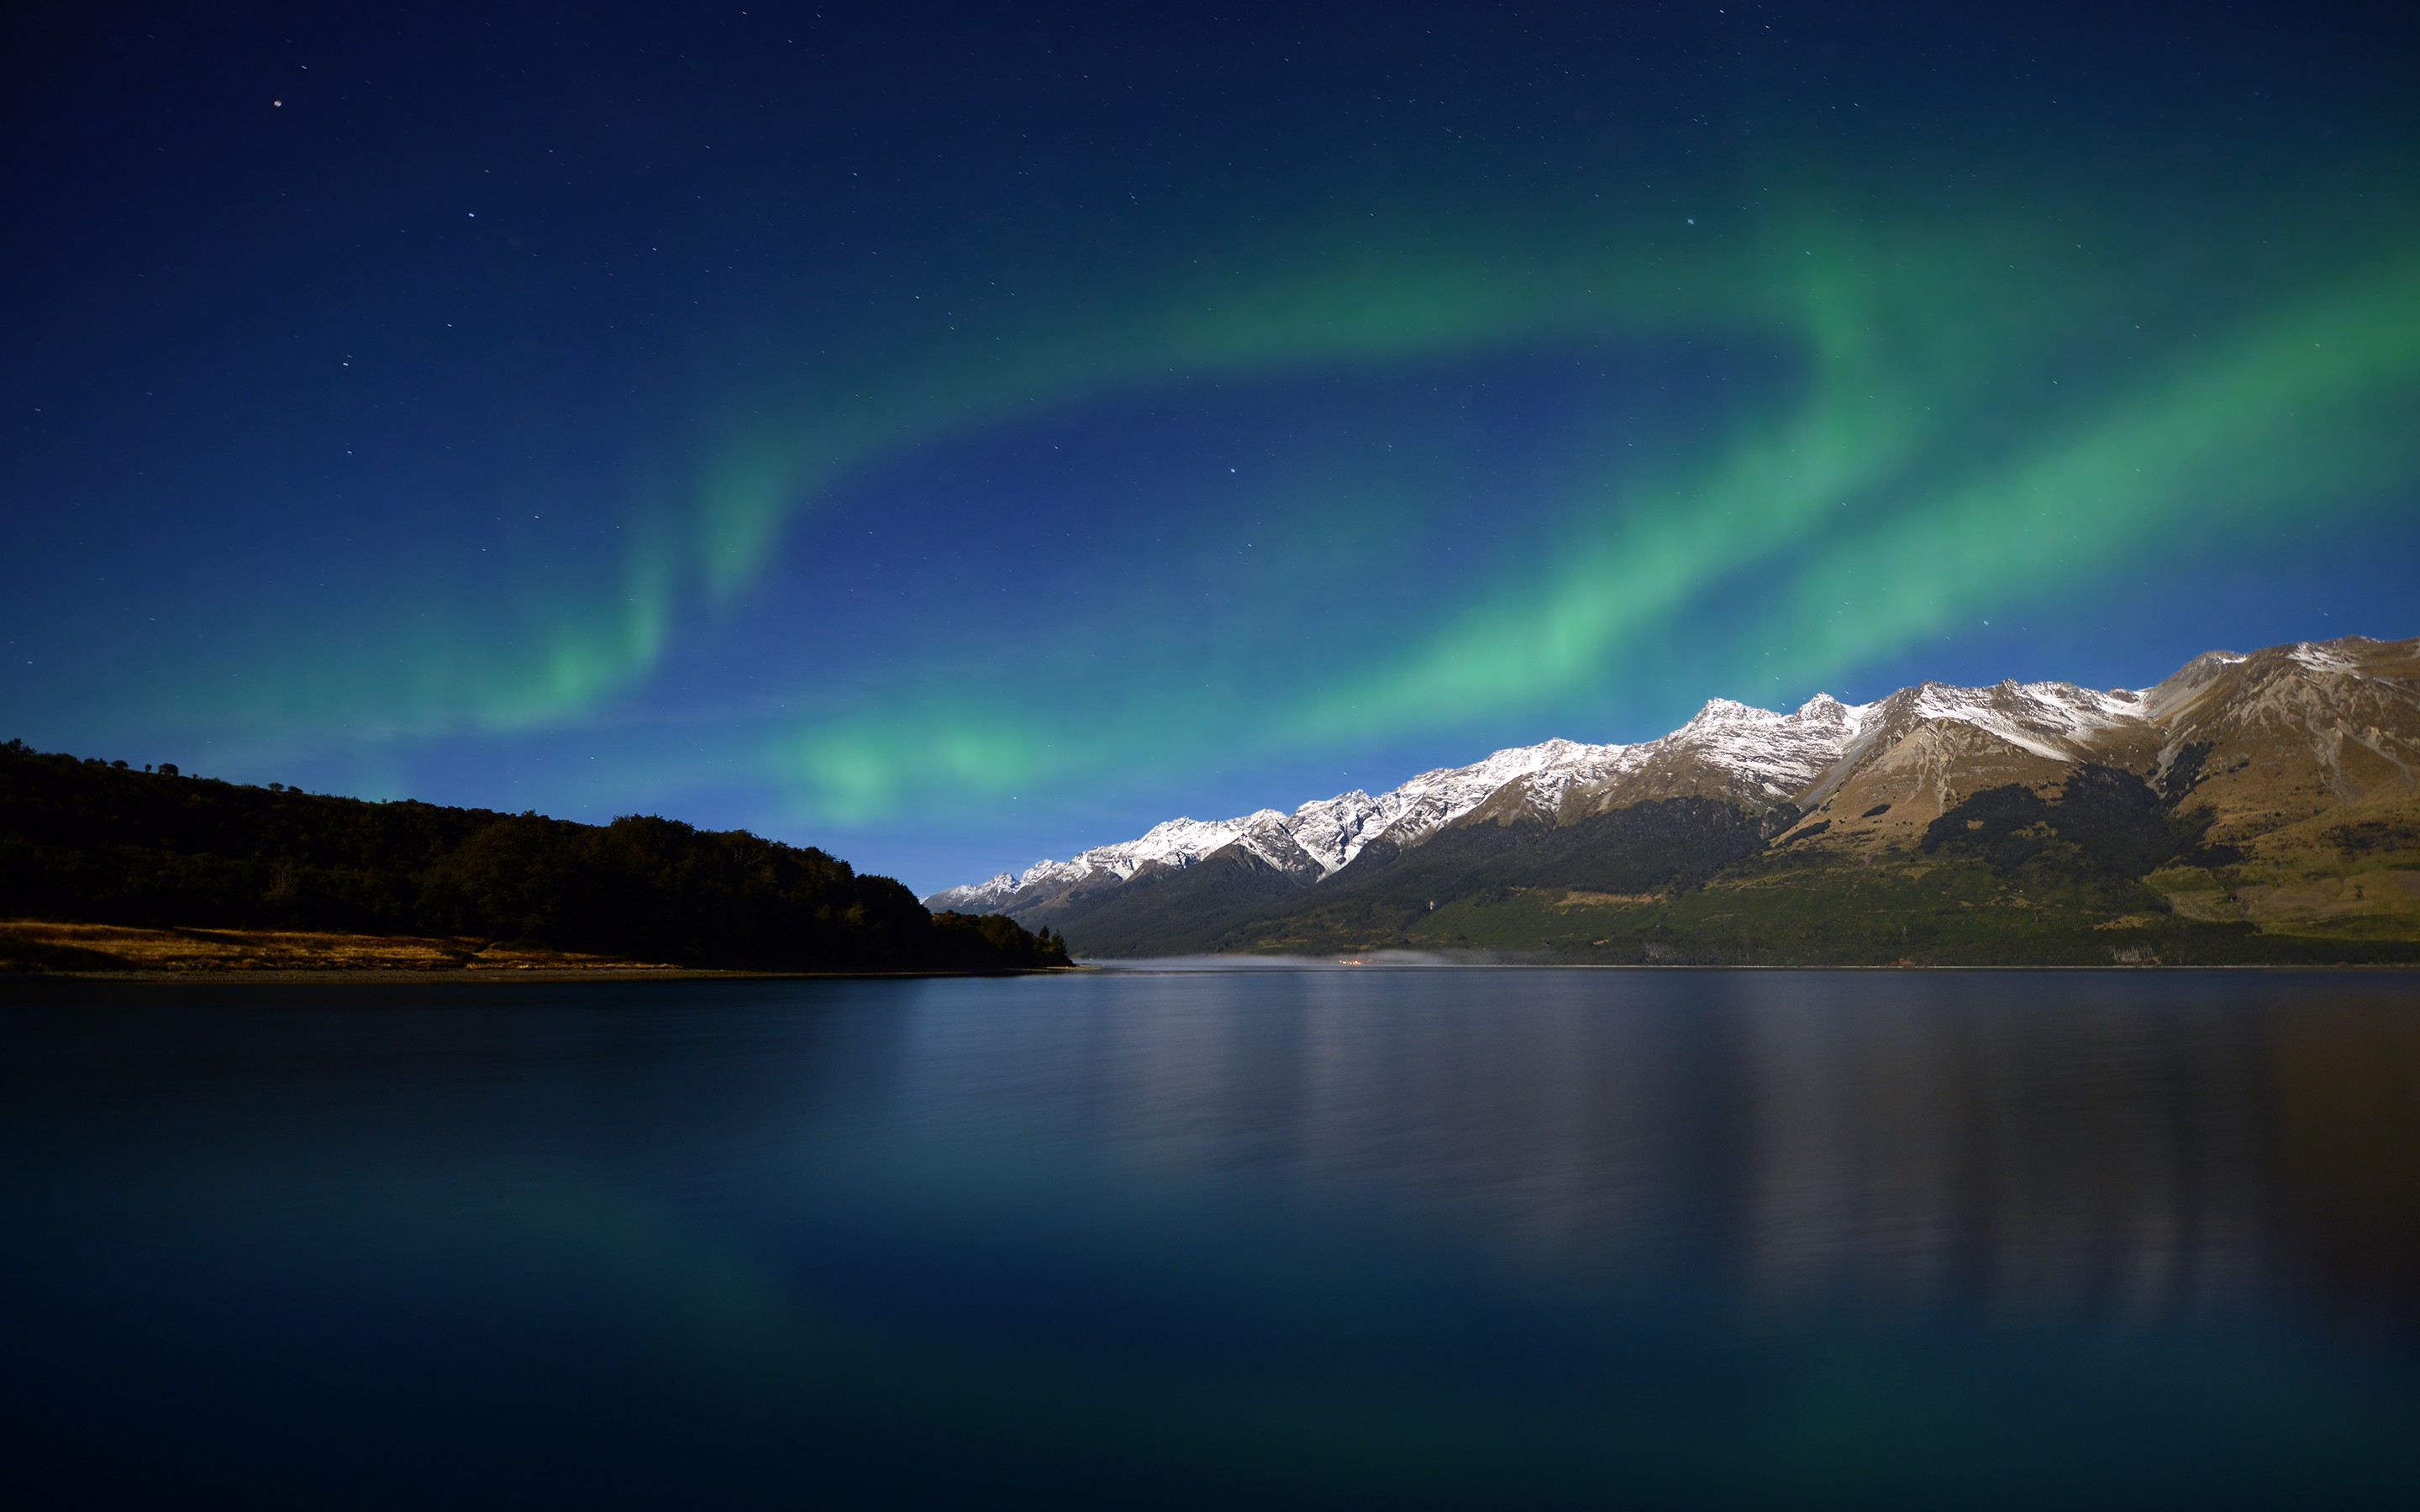 Aurora mountains hd nature 4k wallpapers images backgrounds photos and pictures - Background images 4k hd ...